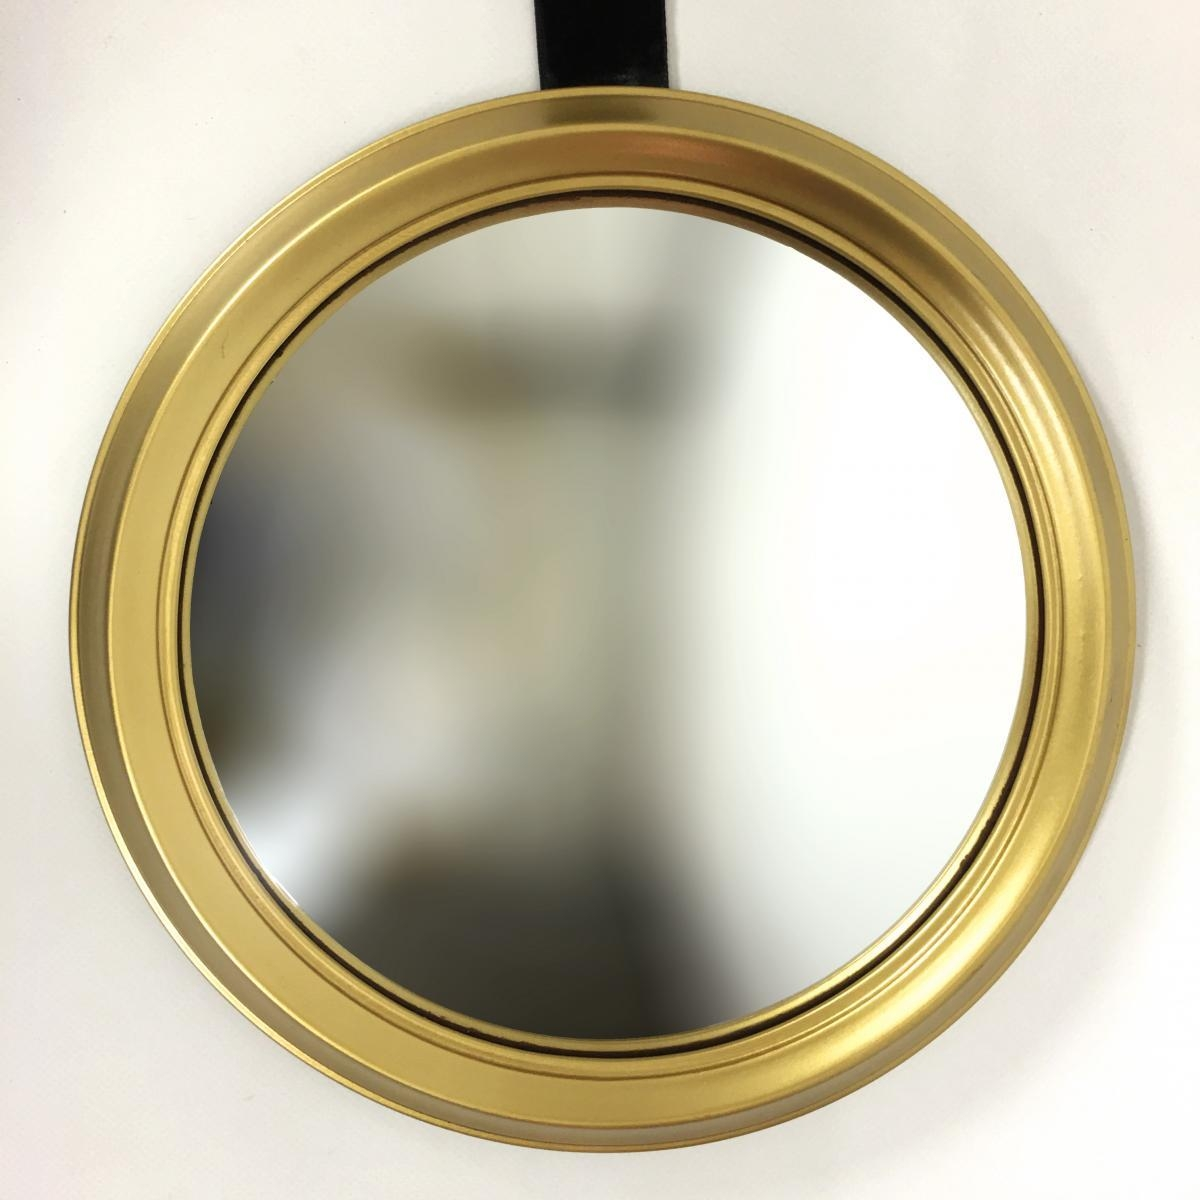 Vintage French Round Convex Mirrorartilux, 1960S For Sale At Intended For Round Convex Mirror (Image 18 of 20)